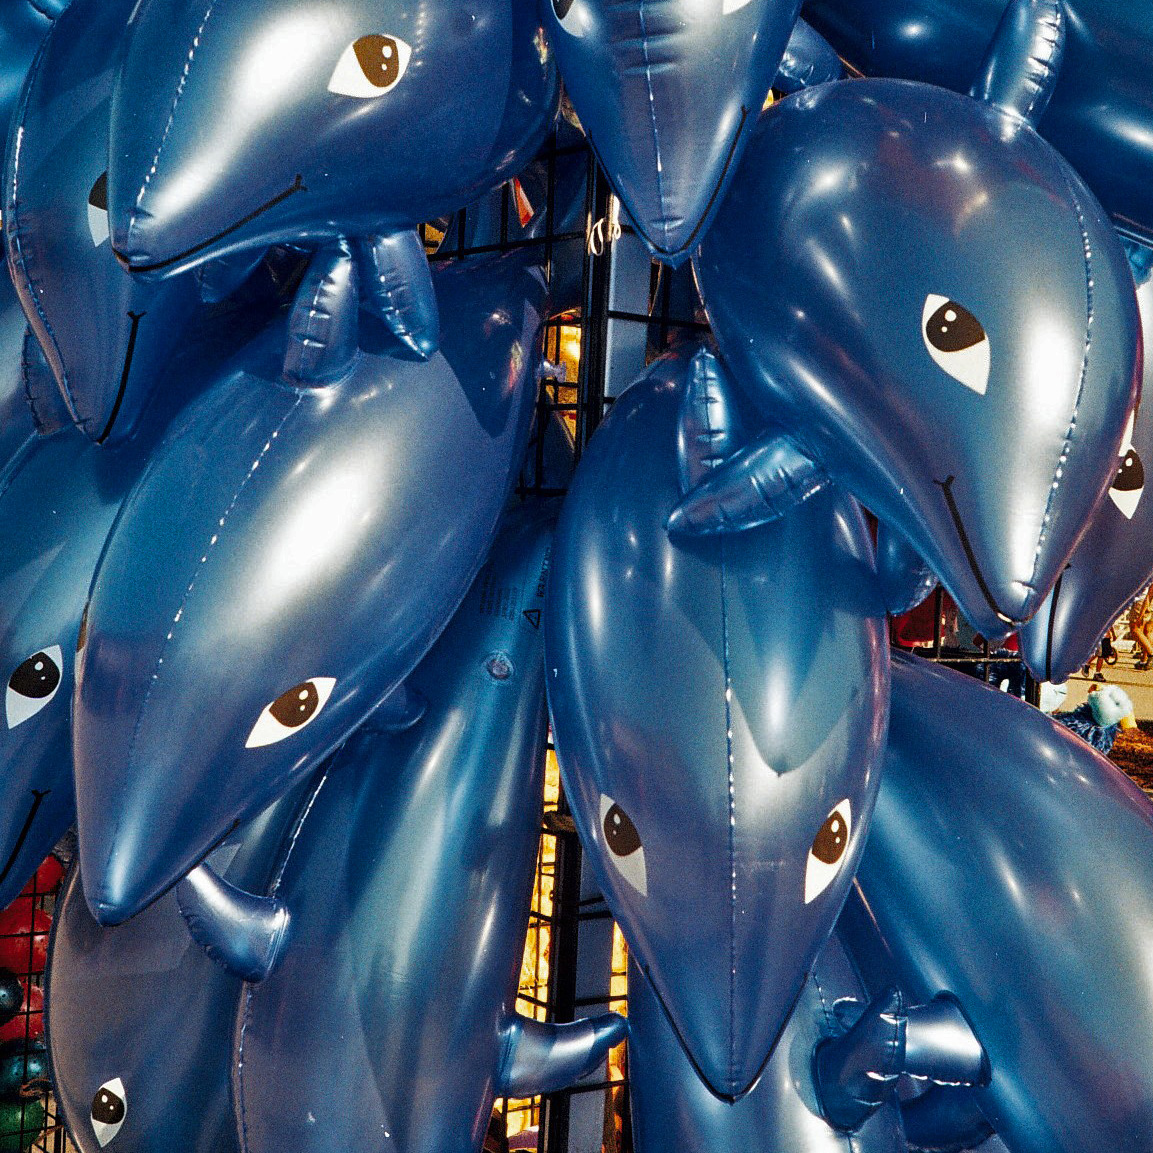 Blow-up dolphins